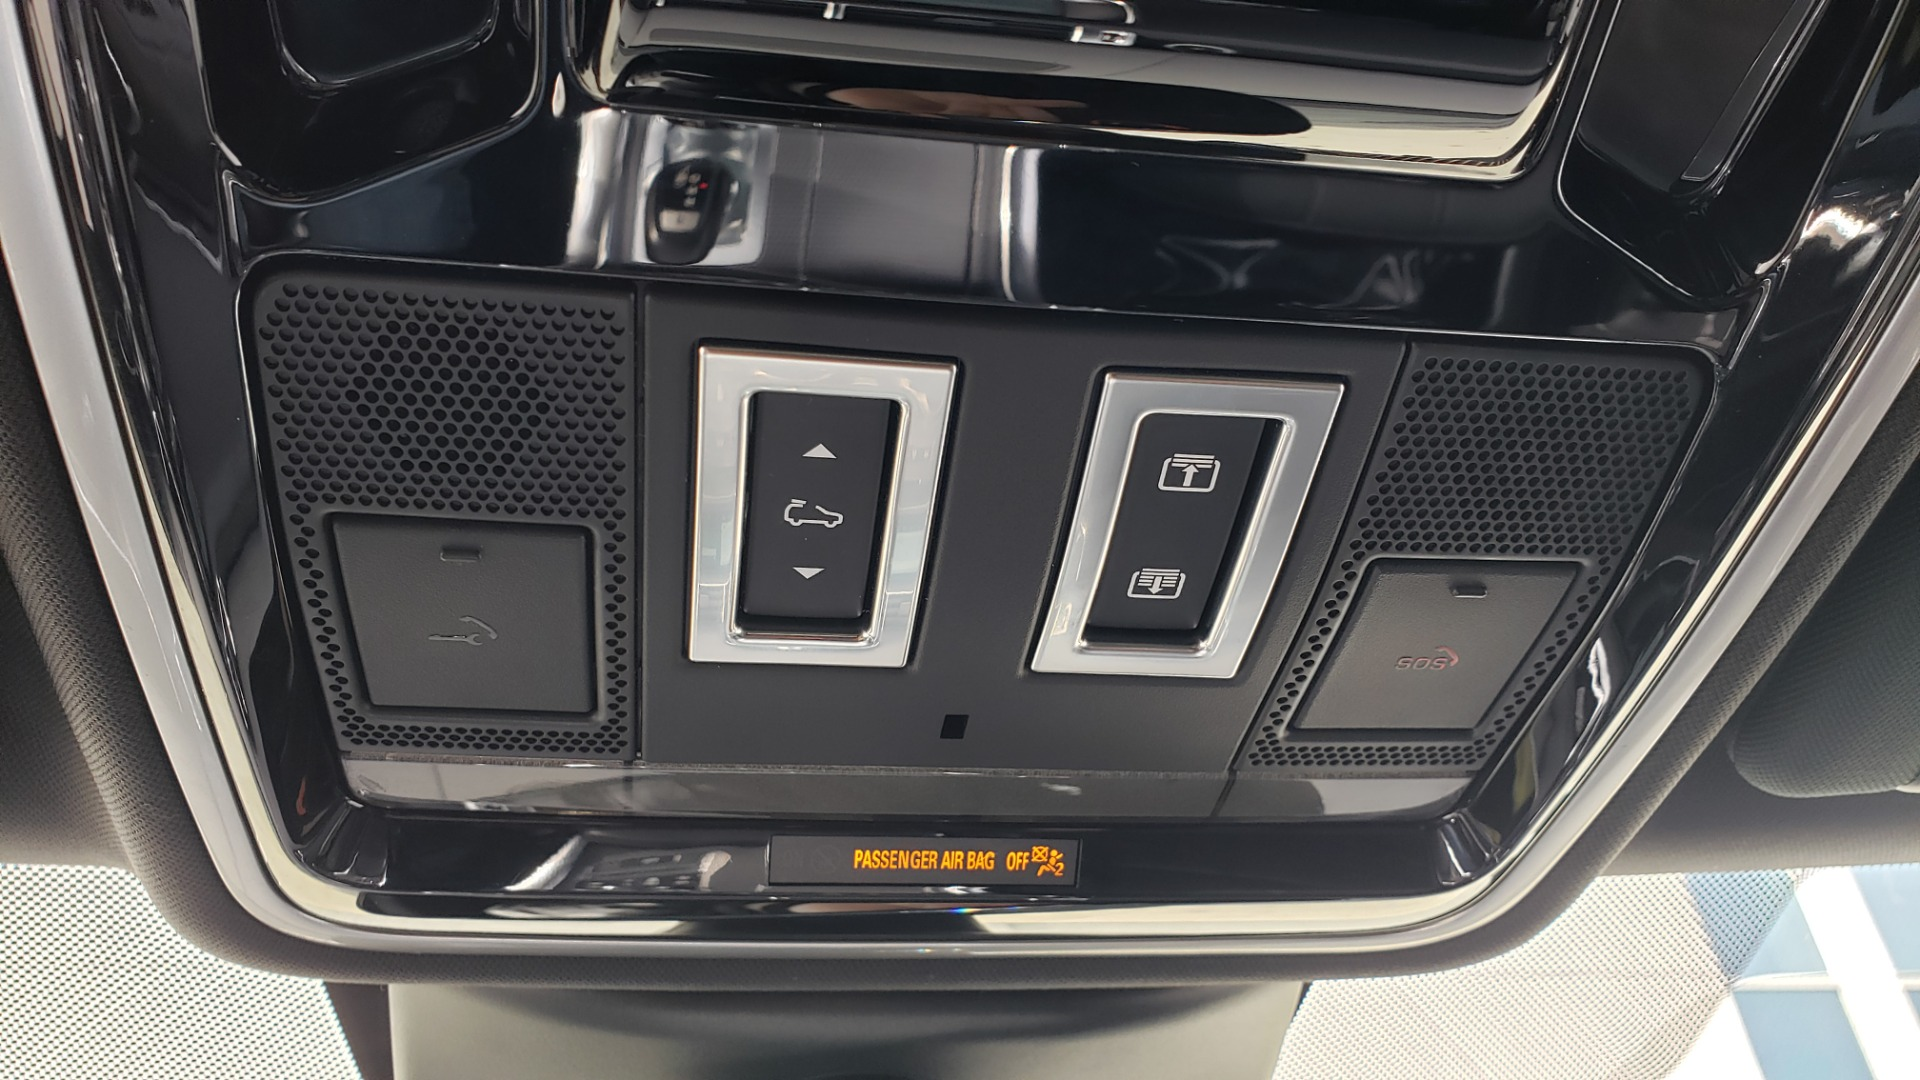 Used 2017 Land Rover RANGE ROVER SPORT HSE DYNAMIC / SC V6 / NAV / MERIDIAN / PANO-ROOF / REARVIEW for sale Sold at Formula Imports in Charlotte NC 28227 61